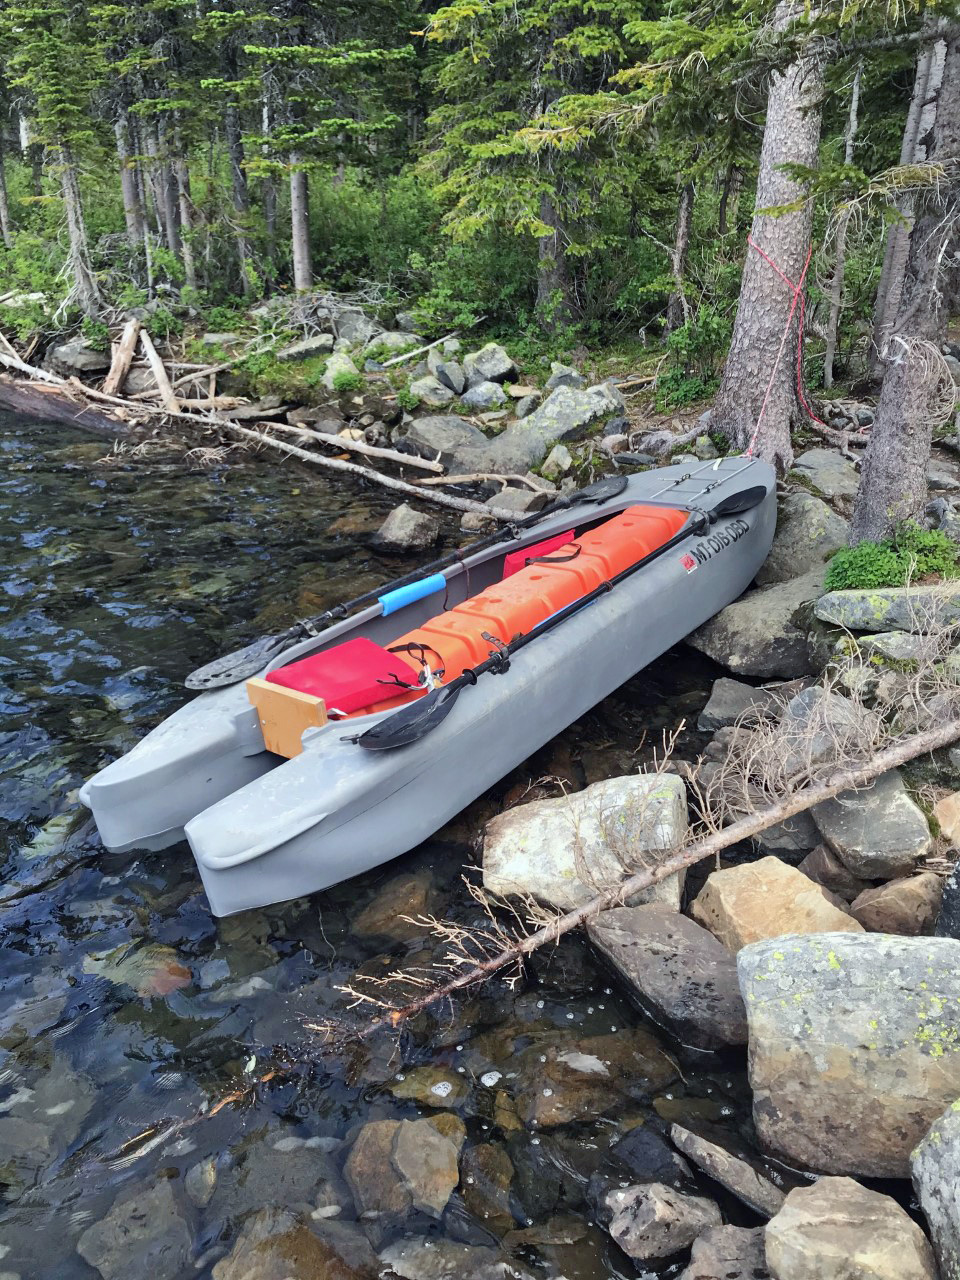 S4 tandem fishing kayak beached, lake Hawkin MT